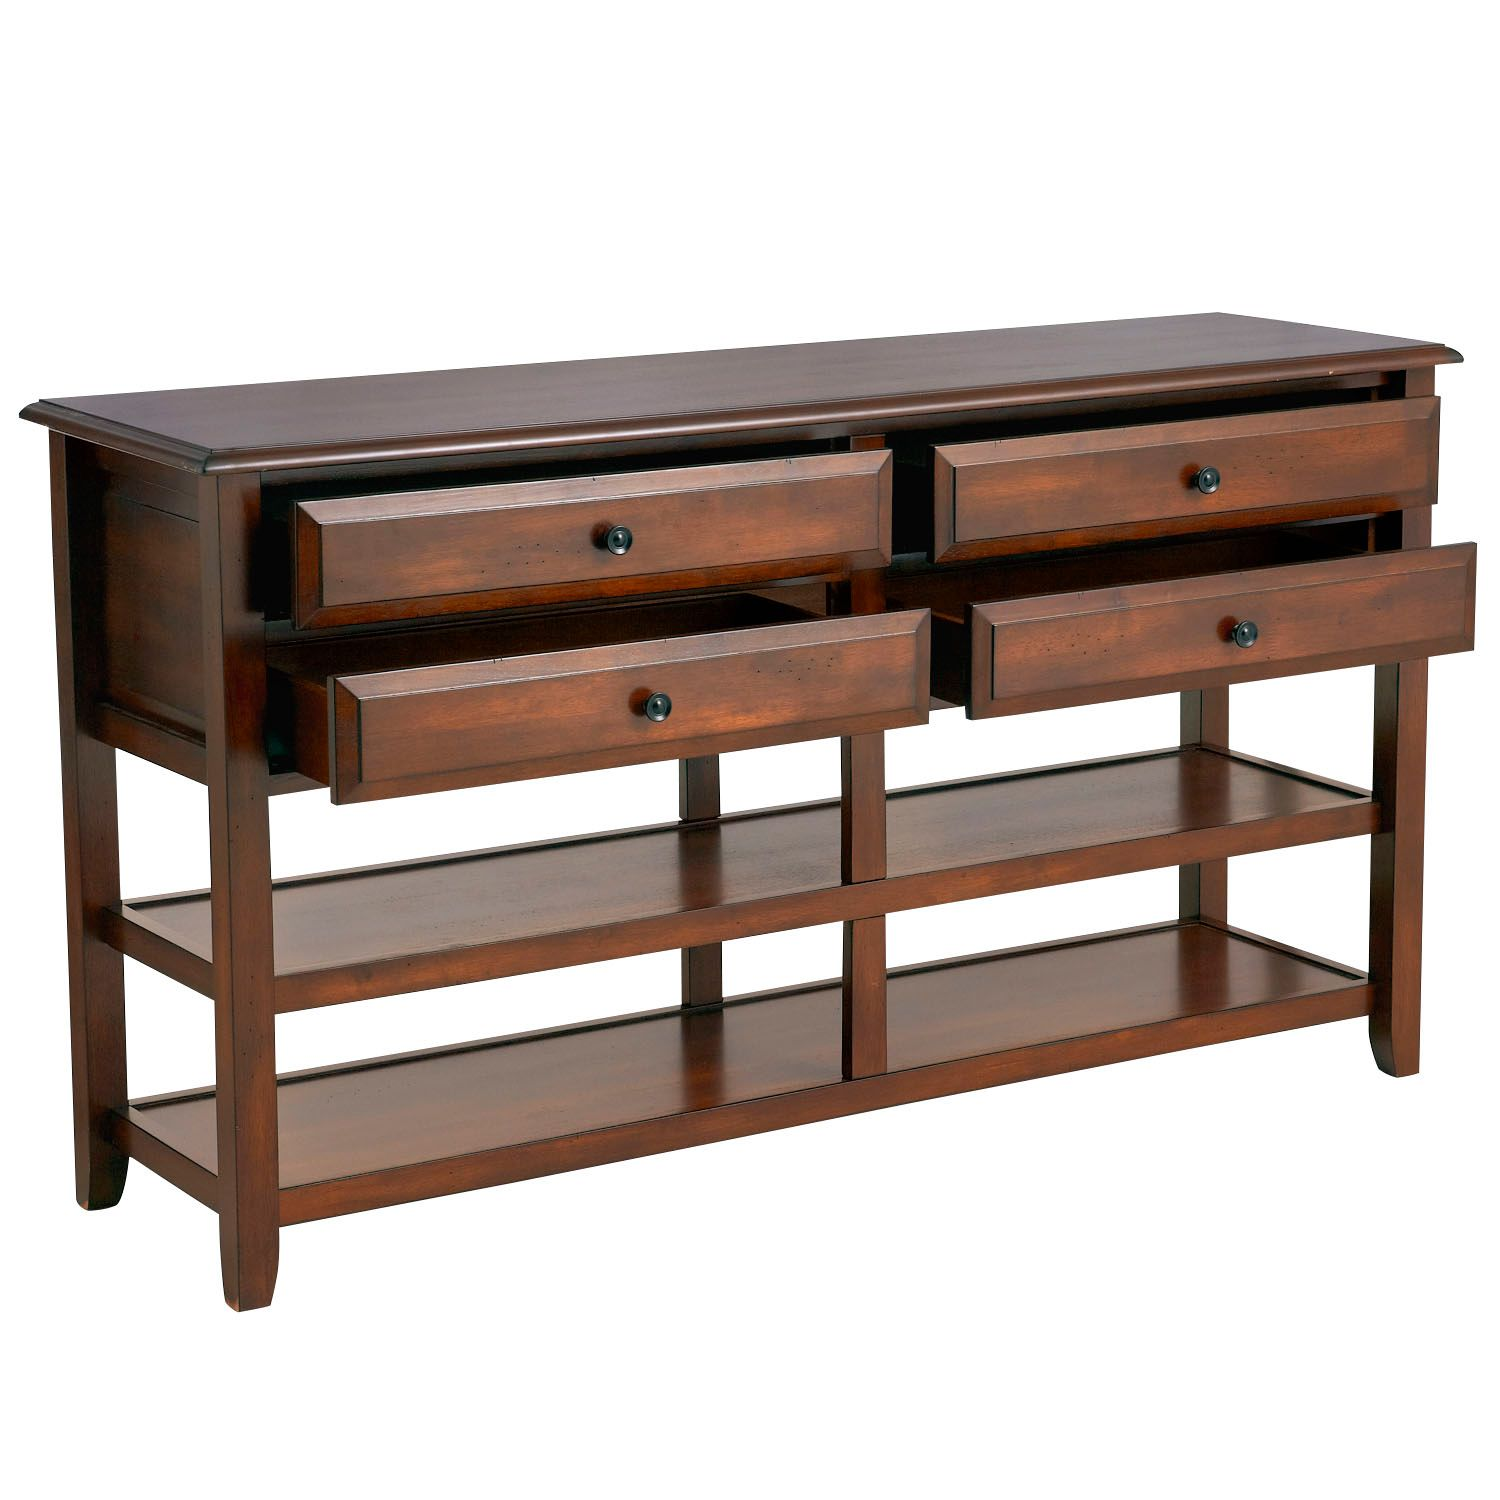 anywhere large tuscan brown console table with kno pier imports one accent collection knobs modern white coffee verizon ellipsis patio furniture side drop mainstays parsons desk